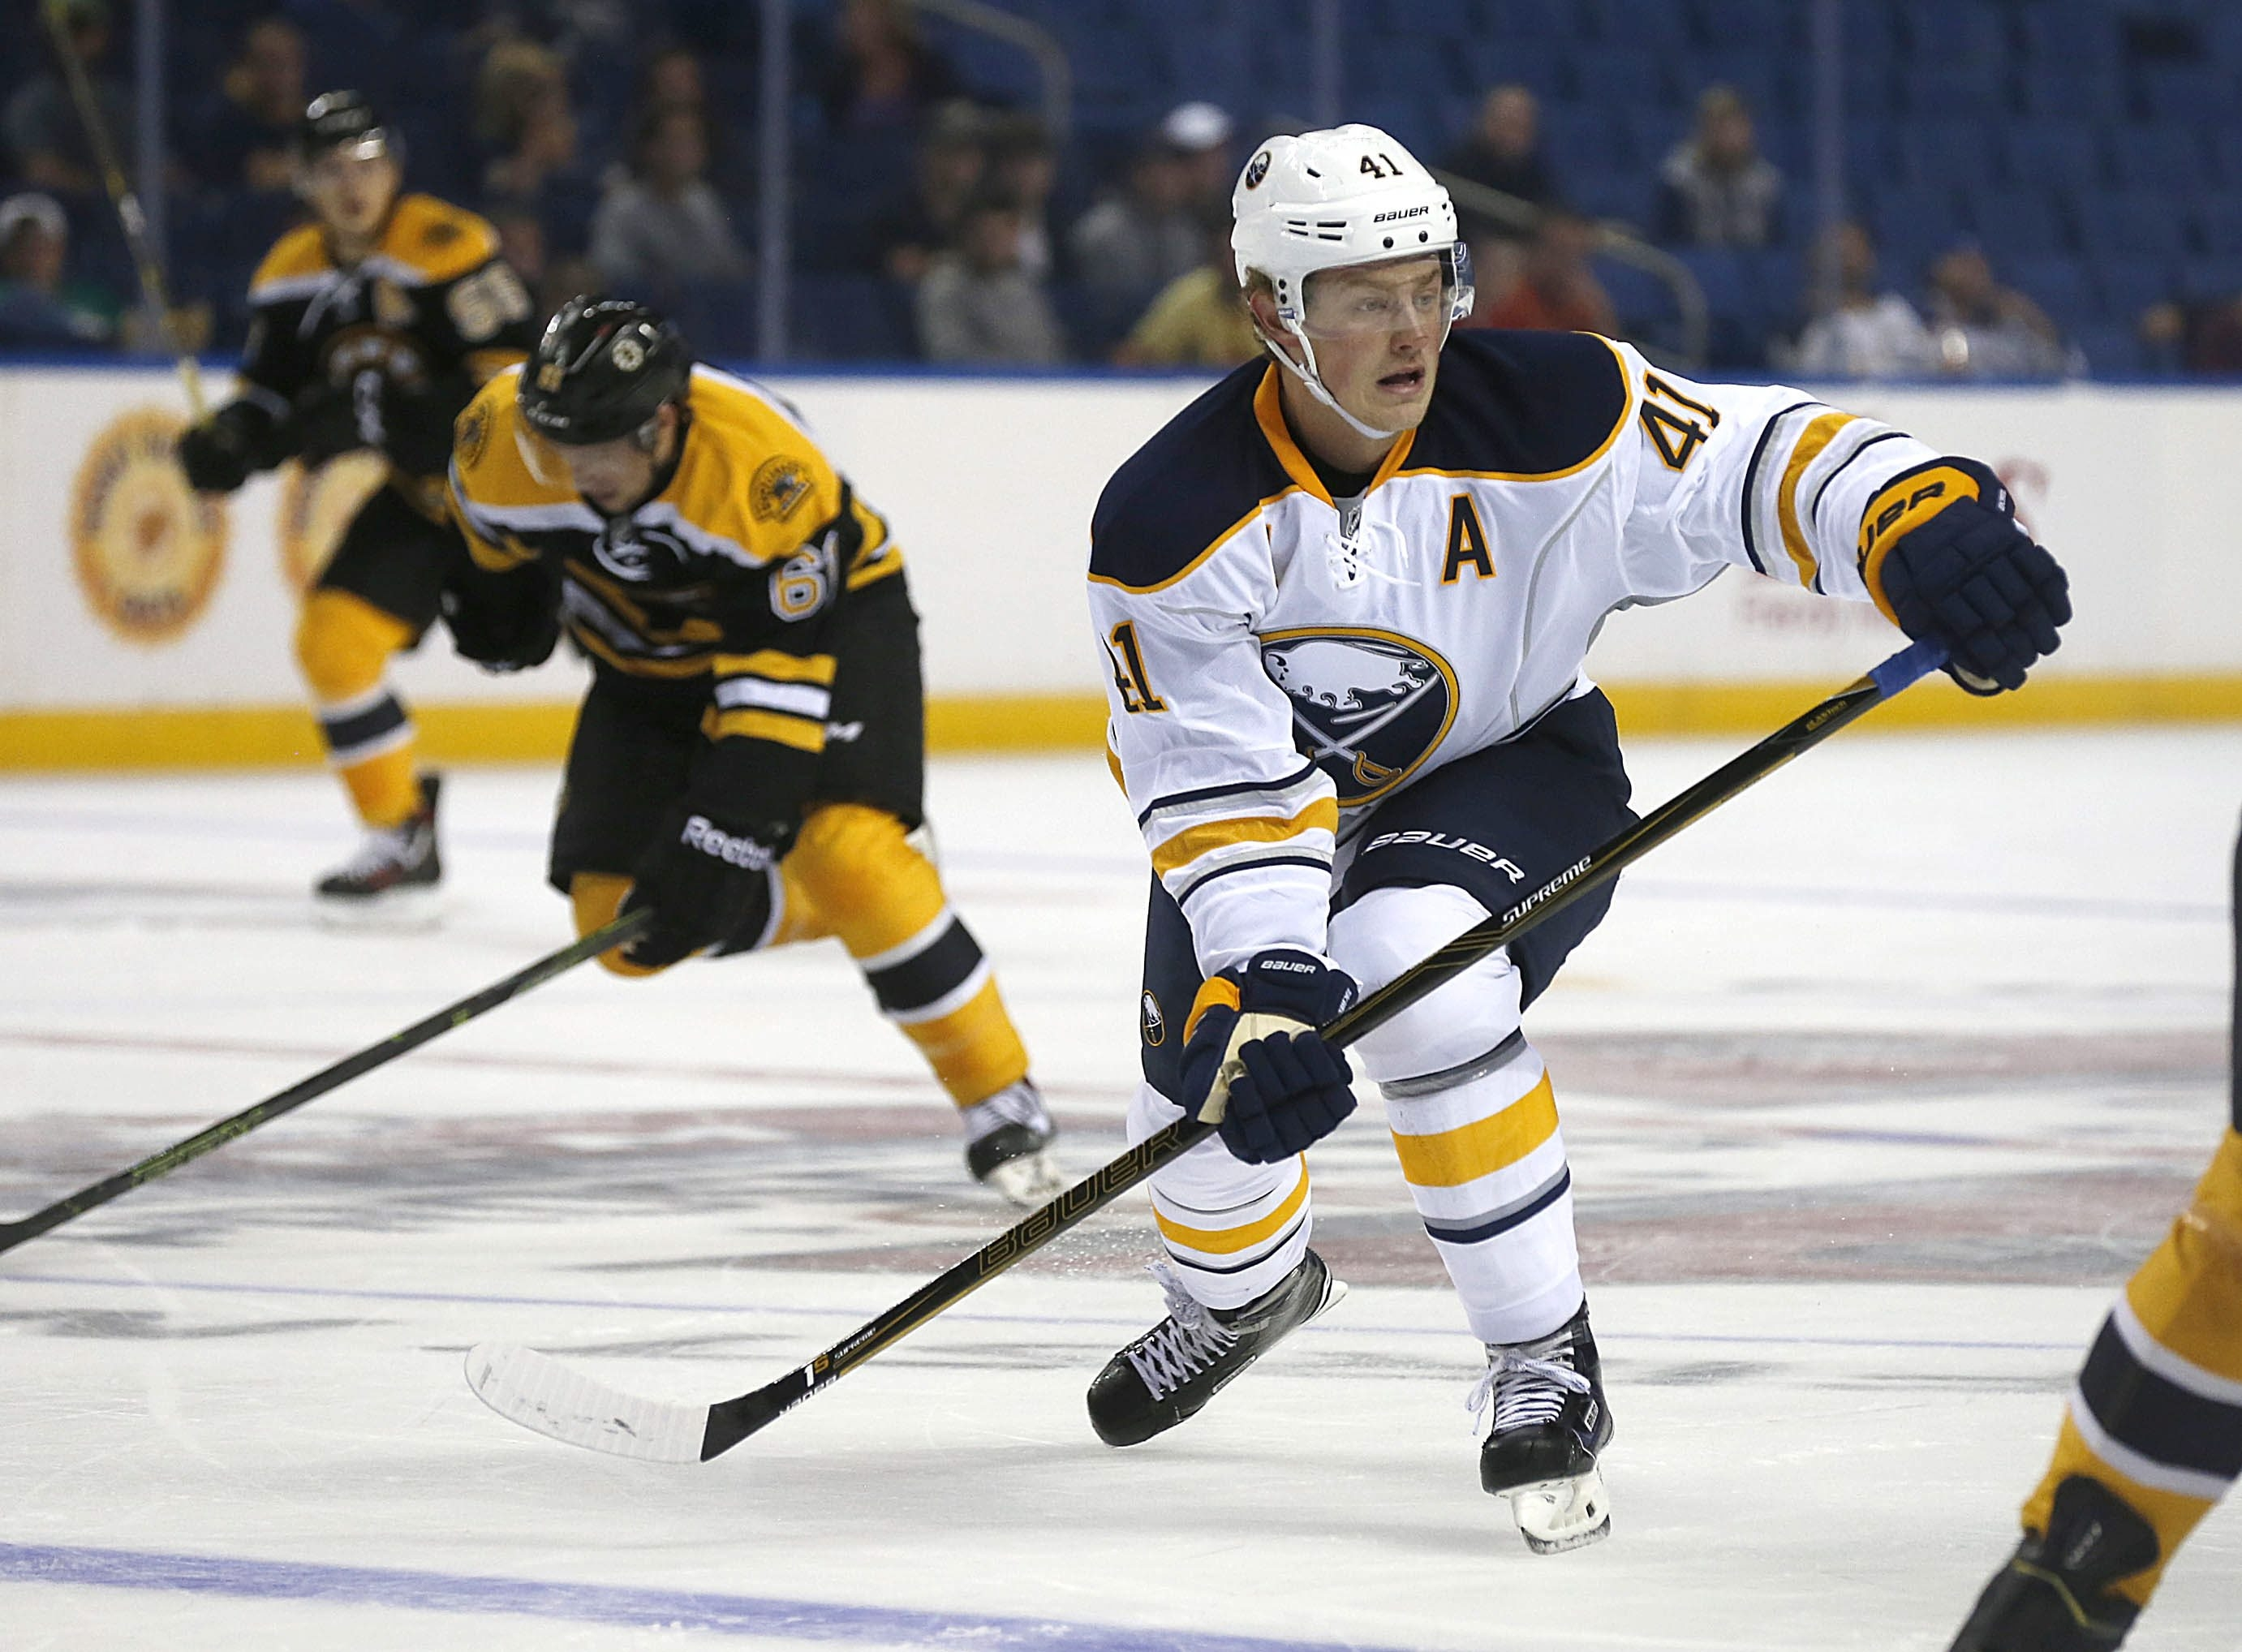 Buffalo's Jack Eichel was more than up to the task of leading the Sabres prospects before 3,527 fans in First Niagara Center.